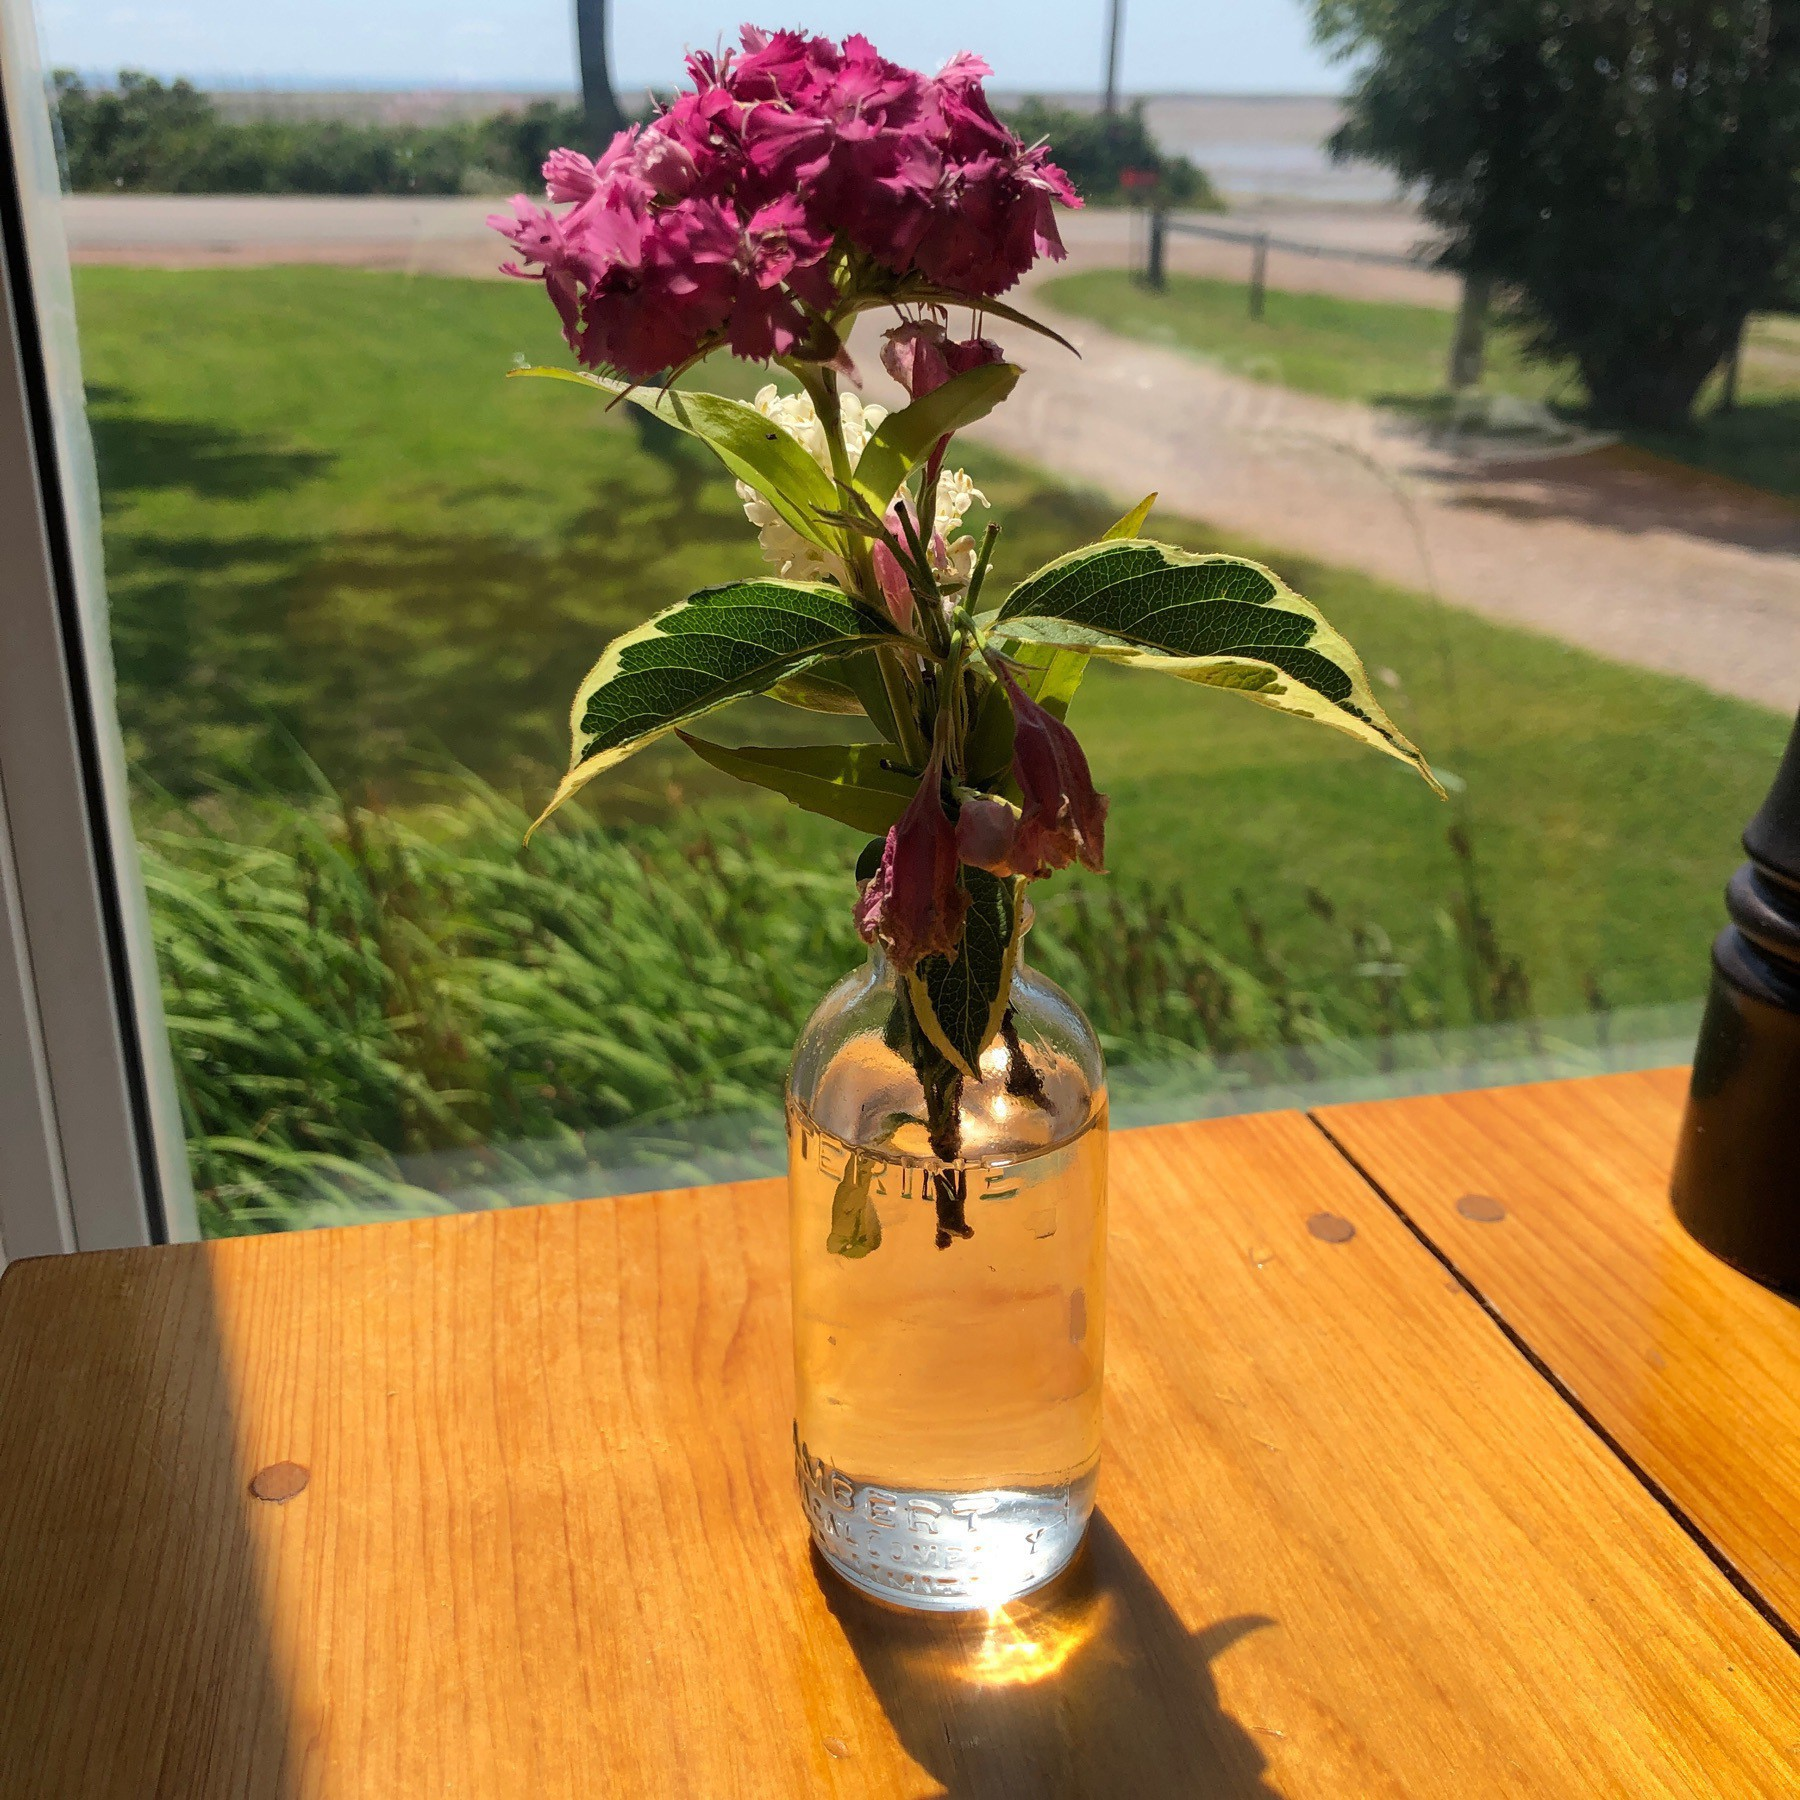 Flower in vase on table in front of window.